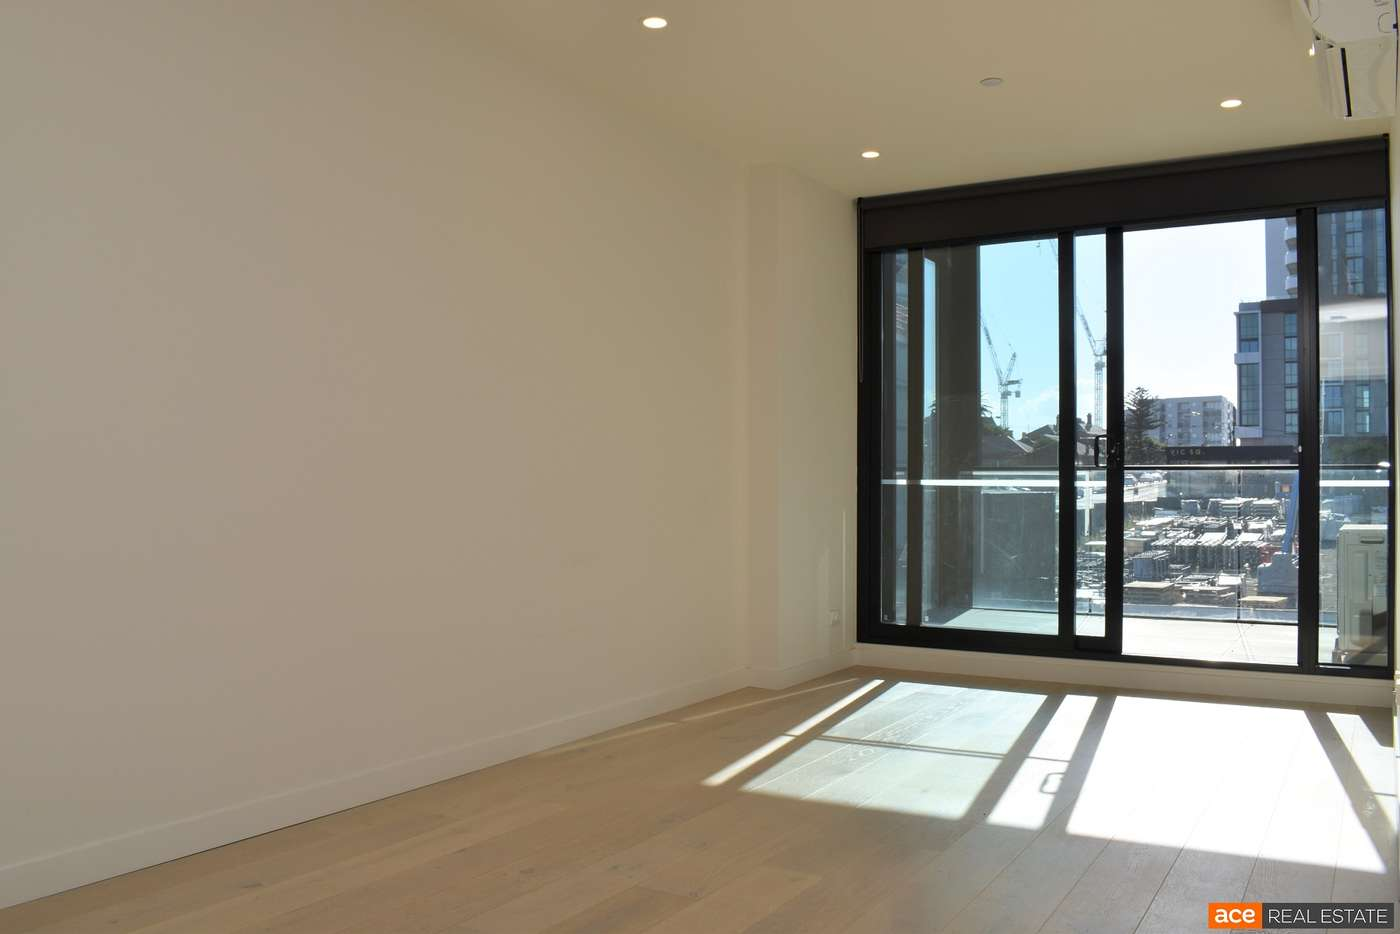 Sixth view of Homely house listing, 209/2 Joseph Road, Footscray VIC 3011